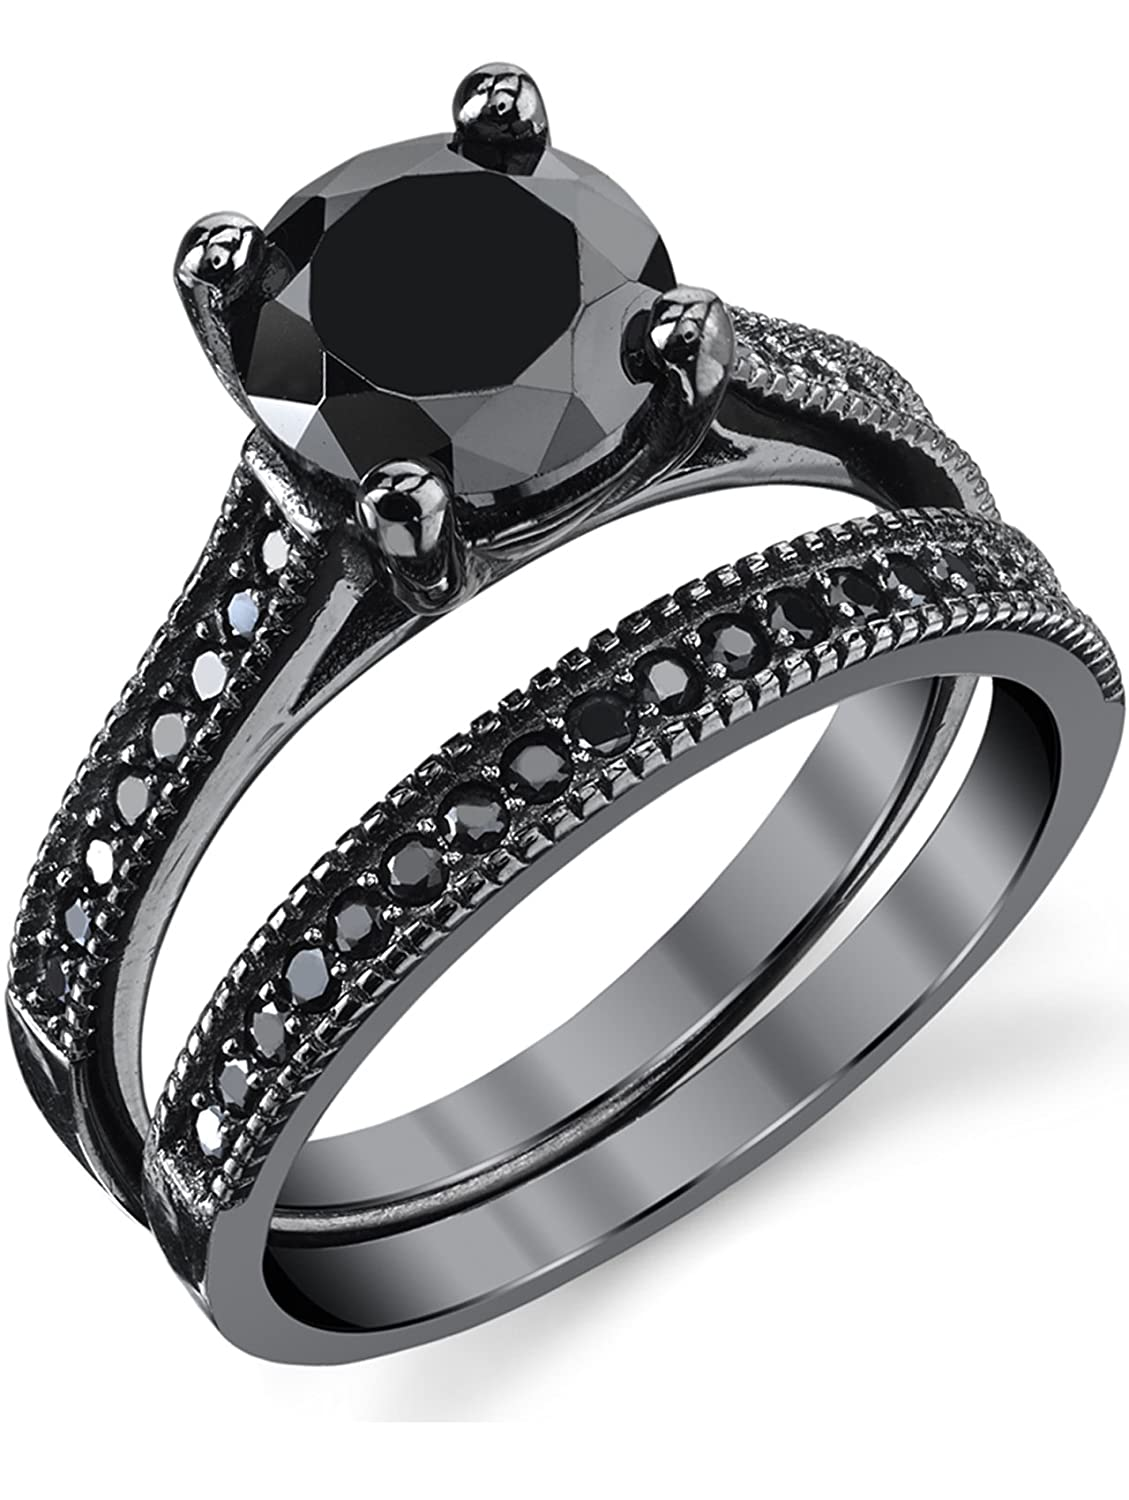 Metal Masters Co. Black Sterling Silver 1.25 Carat Round Black Cubic Zirconia Engagement Wedding Ring Bridal Set SILRXXX235